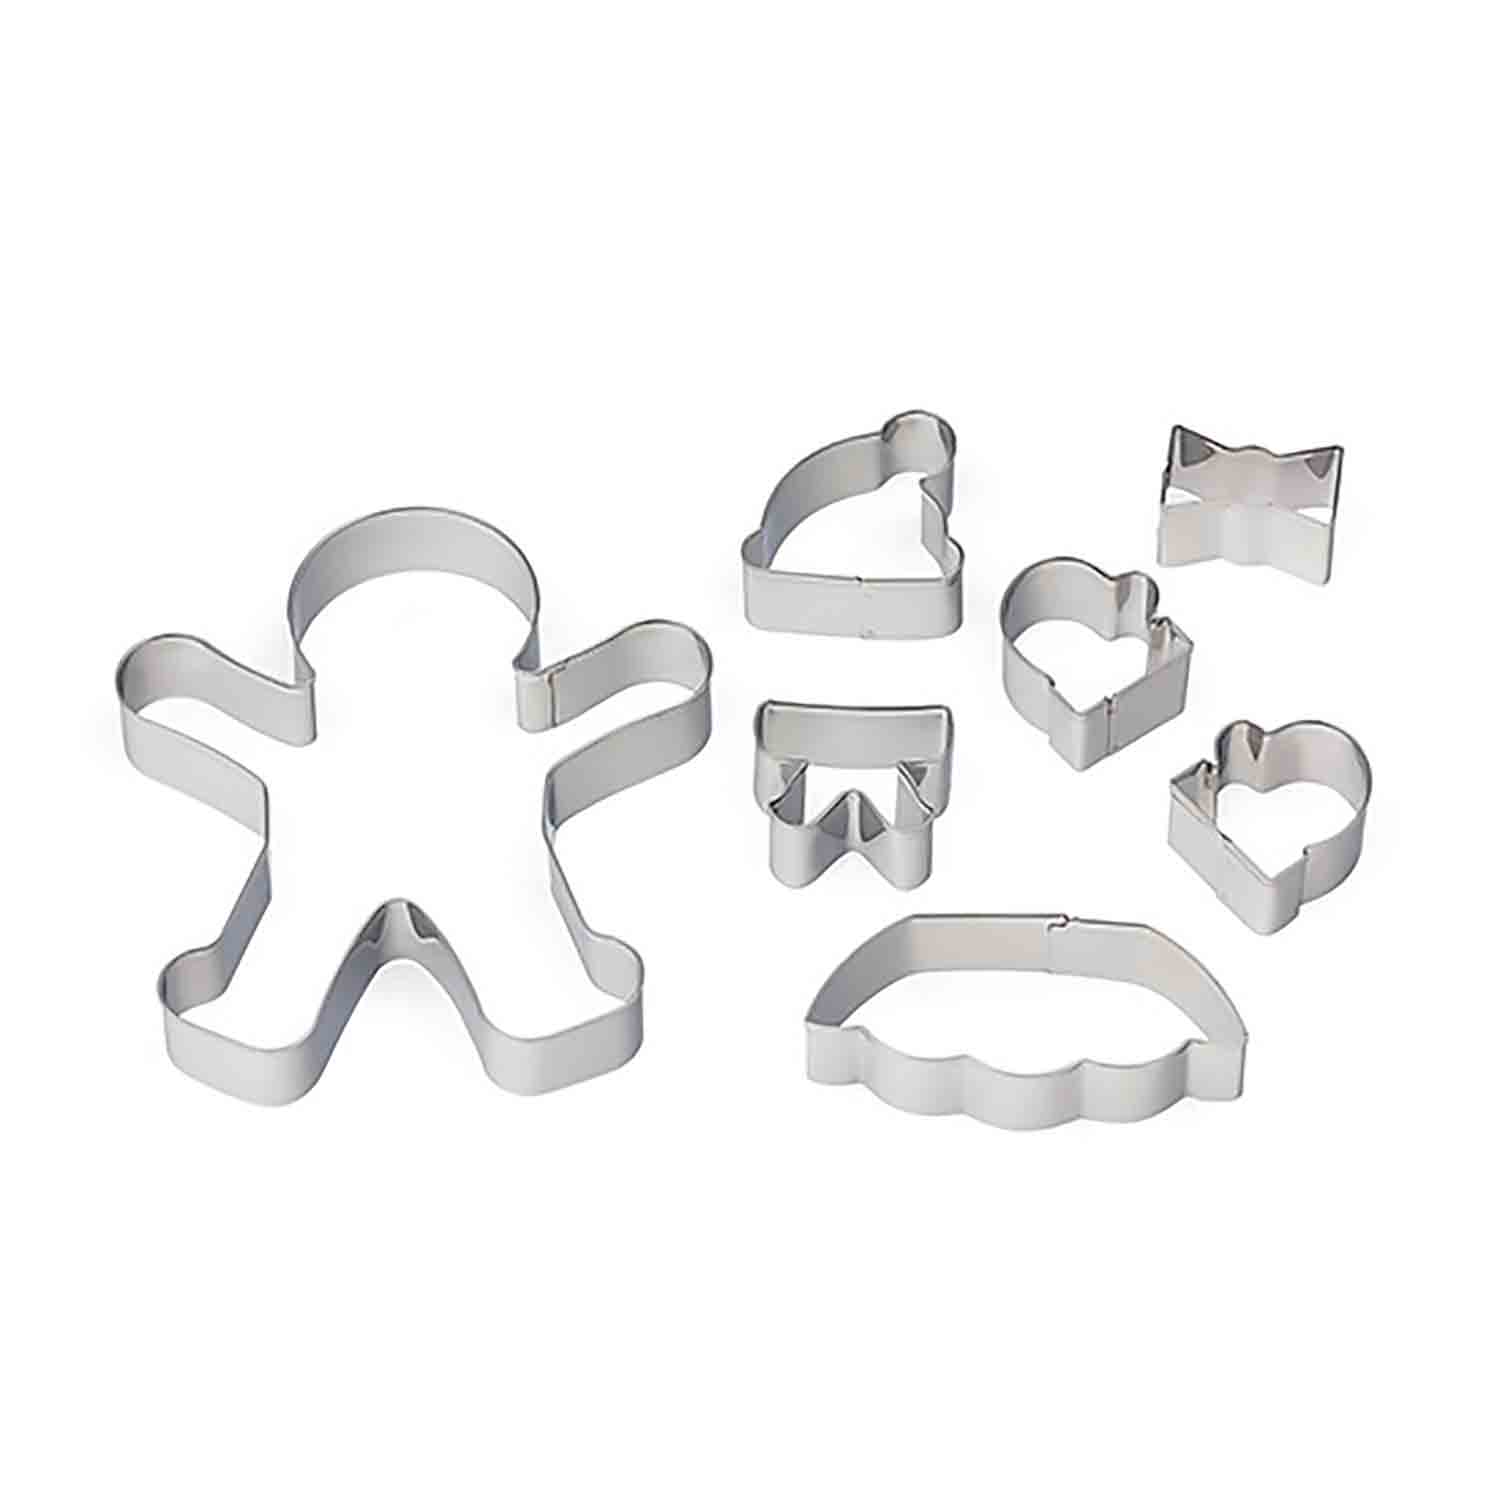 Build Your Own Gingerbread Cookie Cutter Set